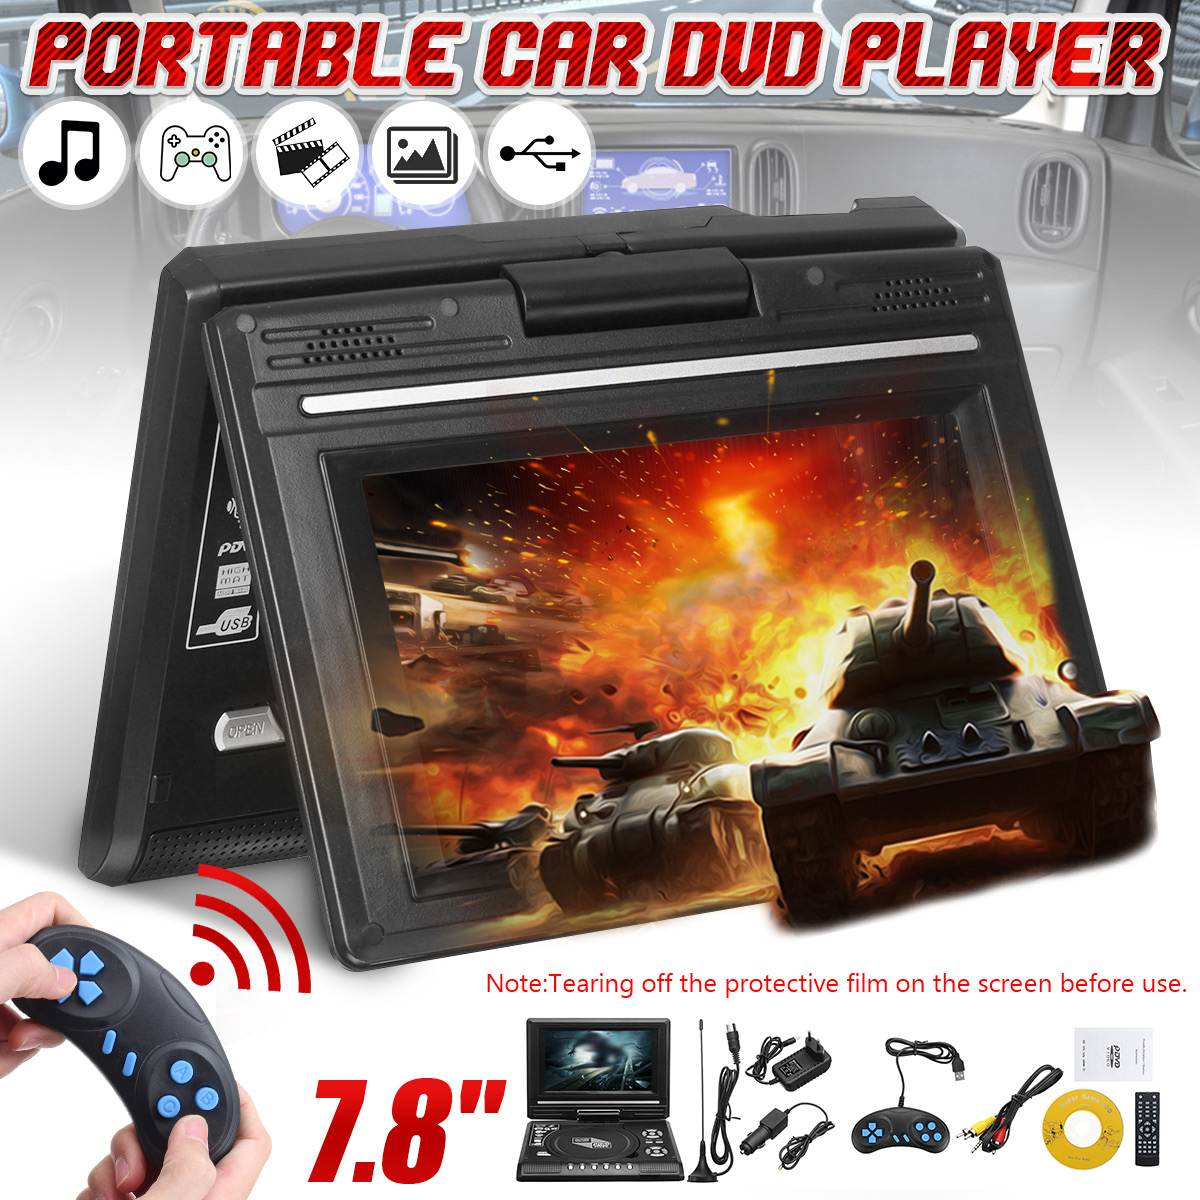 Portable 7.8 Inch HD TV Home Car DVD Player VCD CD MP3 DVD Player USB SD Cards RCA TV Portatil Cable Game 16:9 Rotate LCD Screen